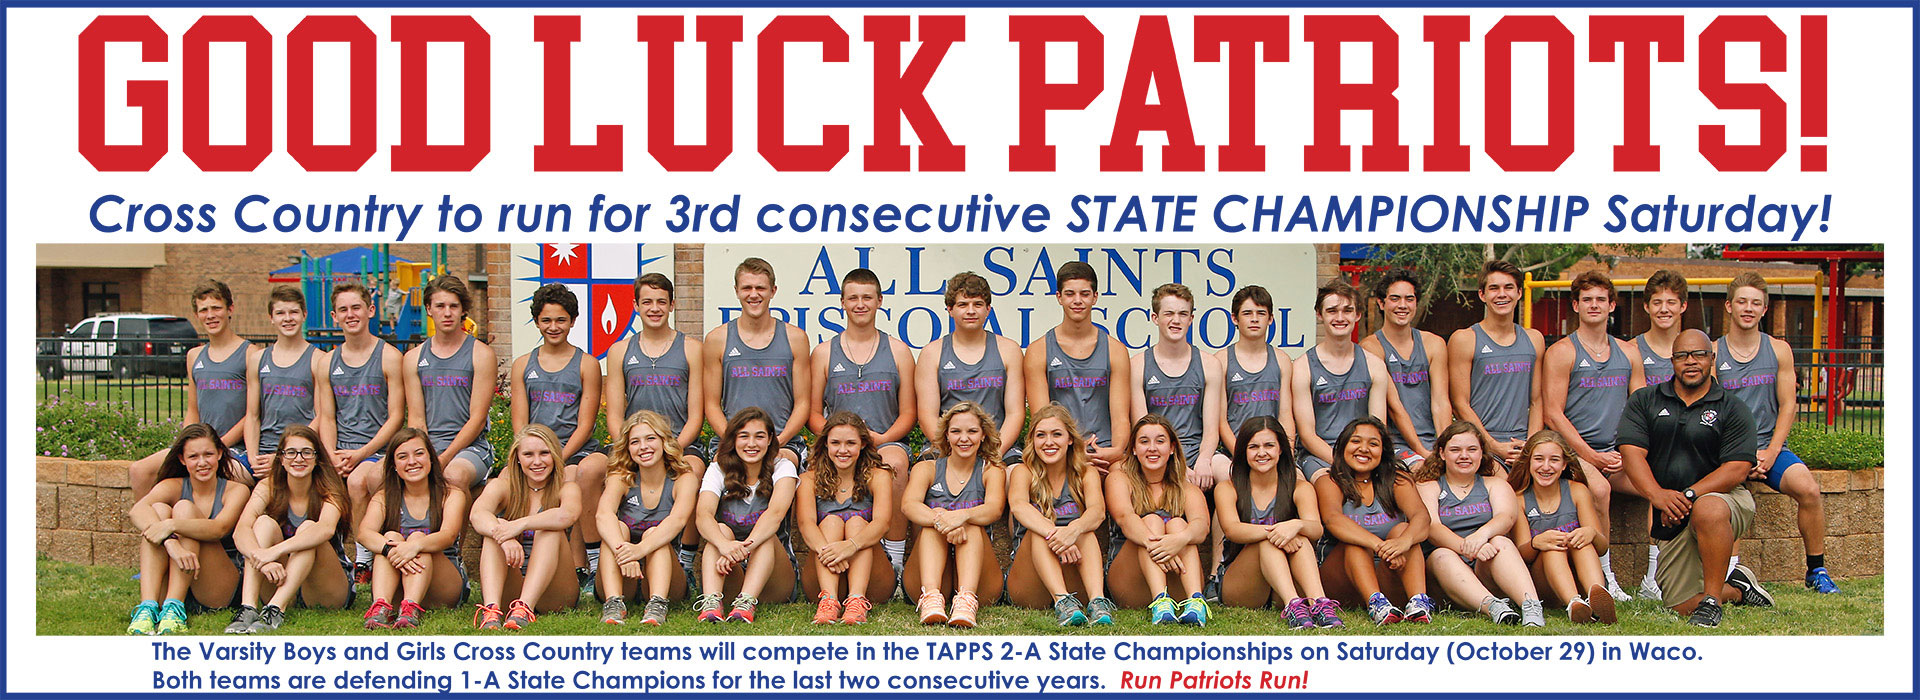 cross-country-to-vie-for-3rd-state-title